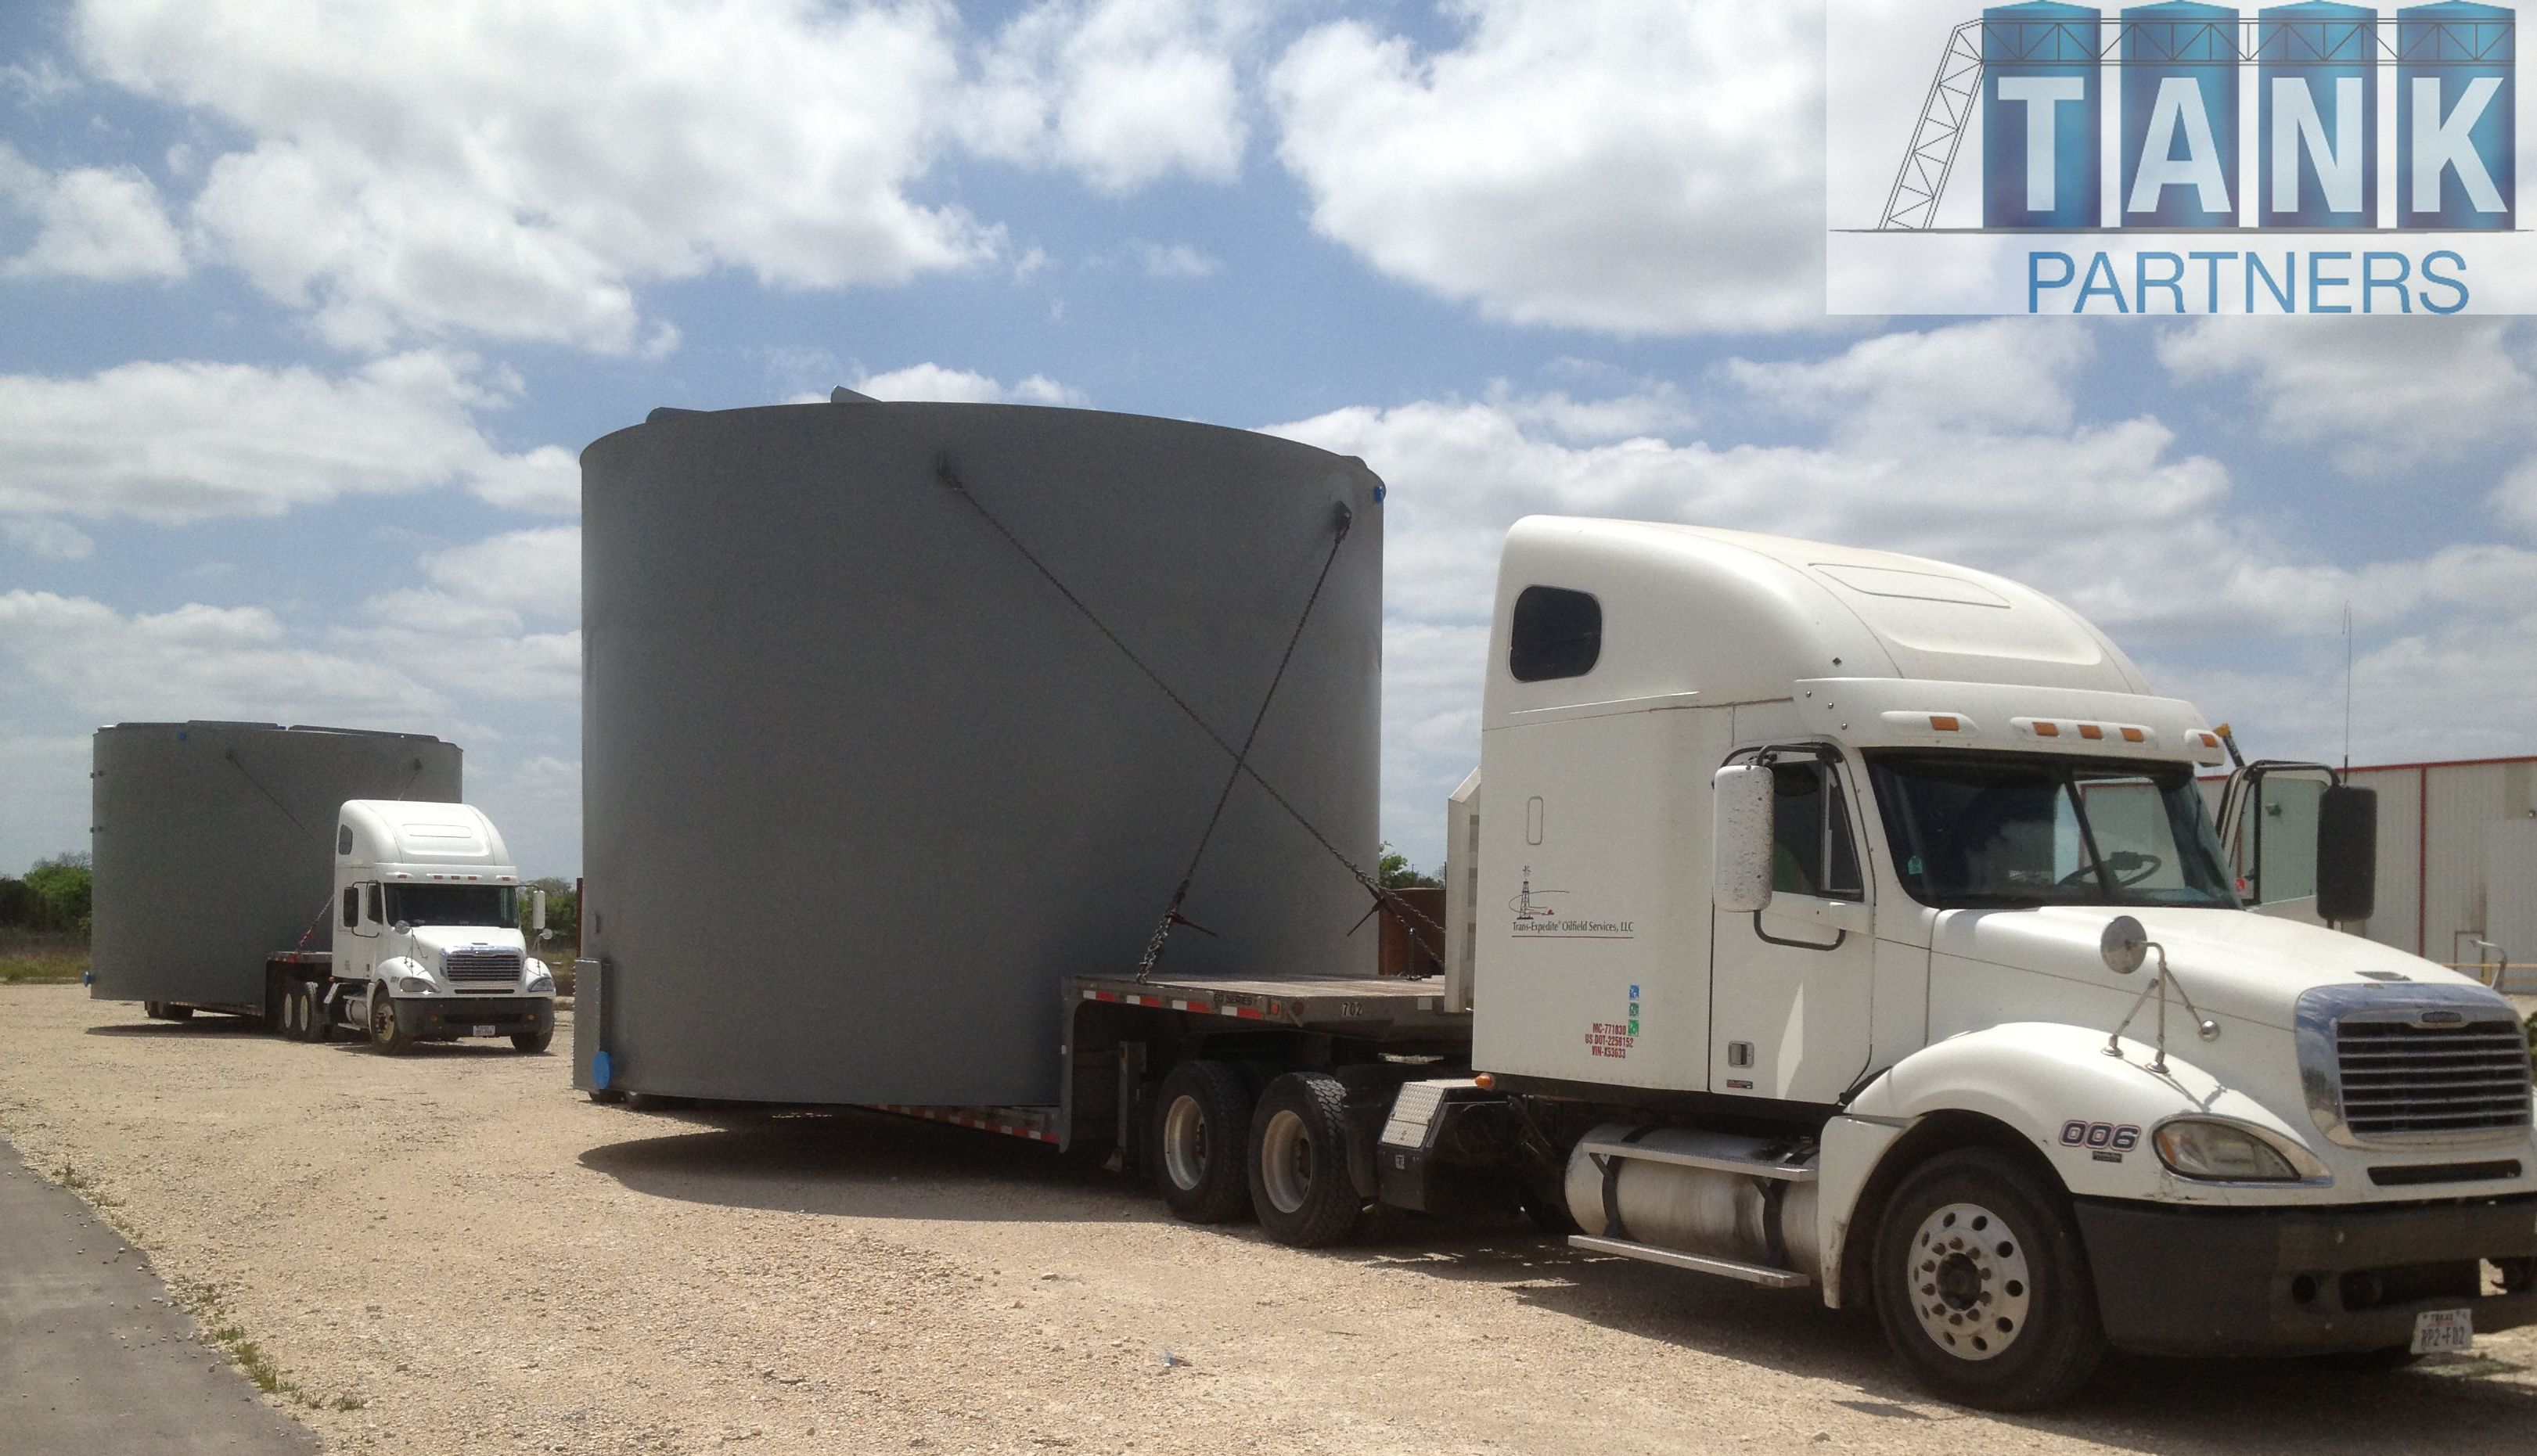 Tank Partners Manufactures 1000 BBL low and high profile tanks. These tanks are low profile, 21'6